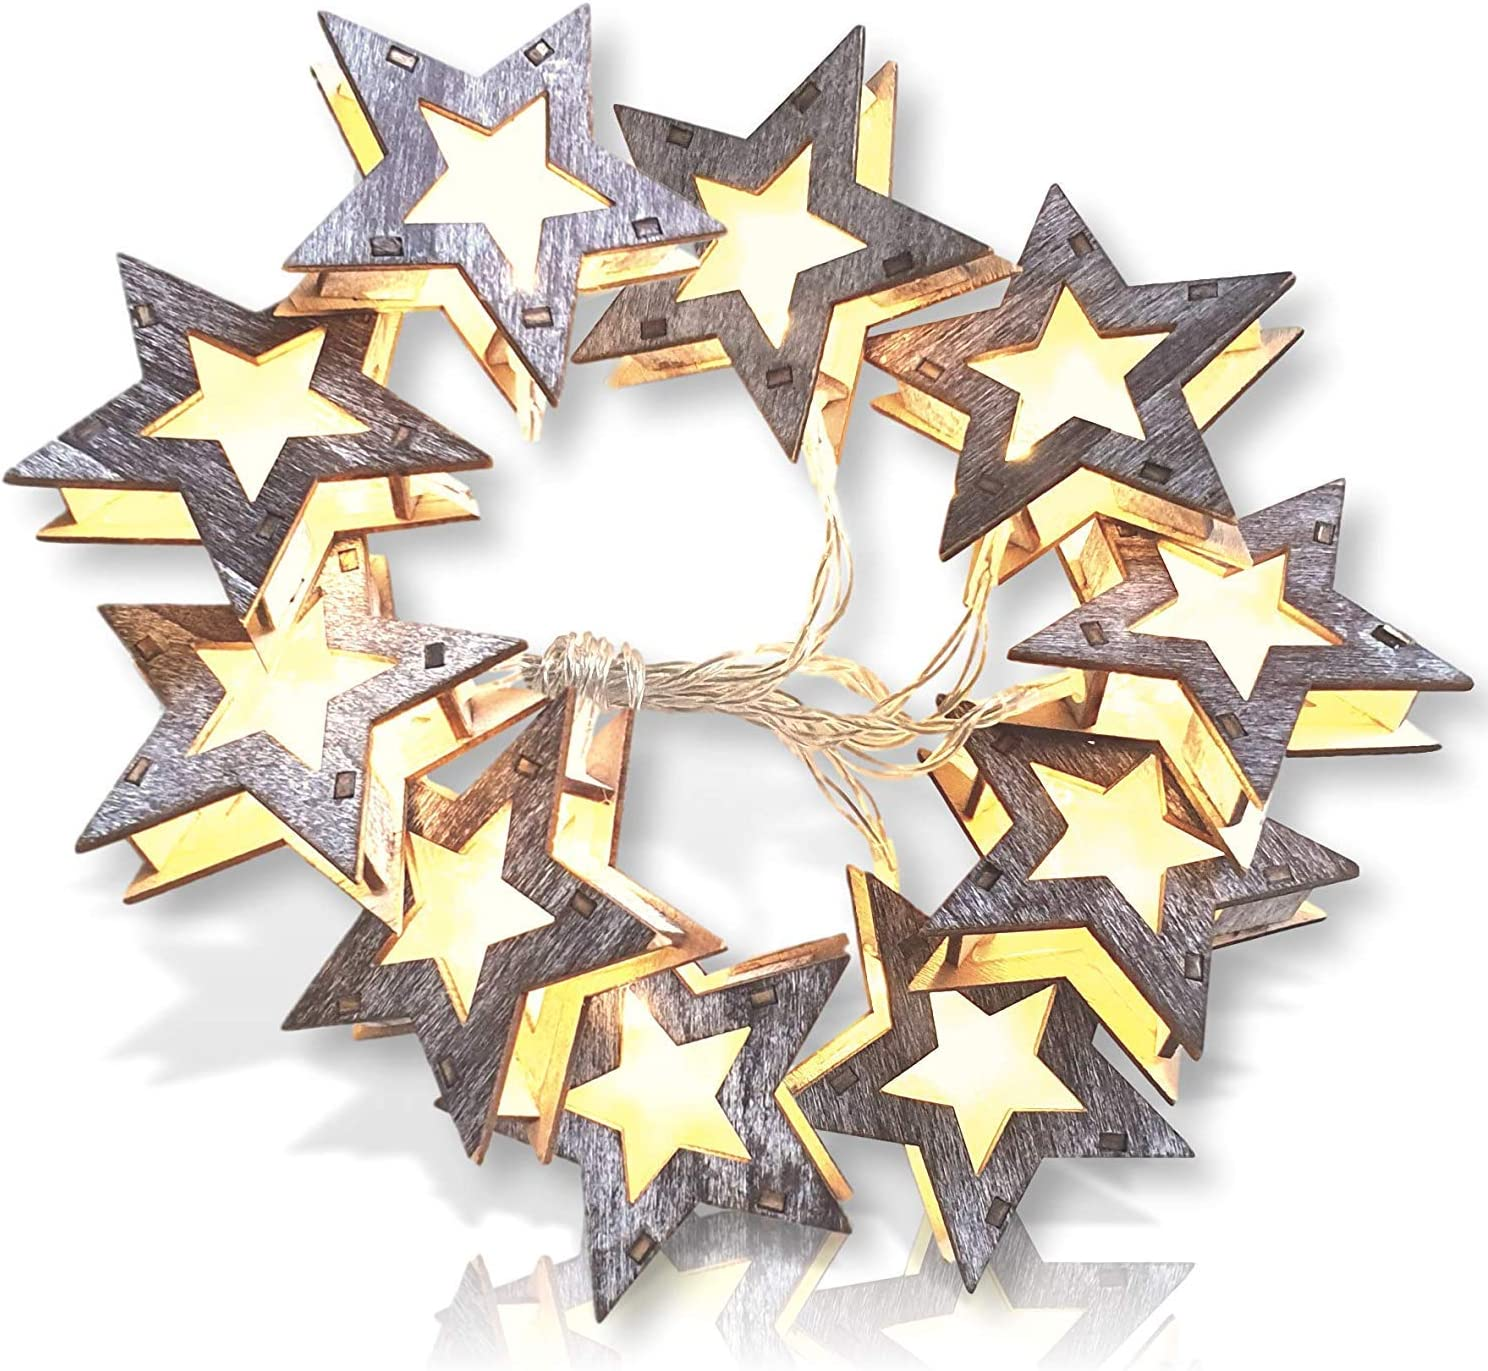 Wooden Star Lights. Rustic Star String Lights. Distressed Wood Star Shaped Lights Garland for Farmhouse Stars Christmas Lights Decoration